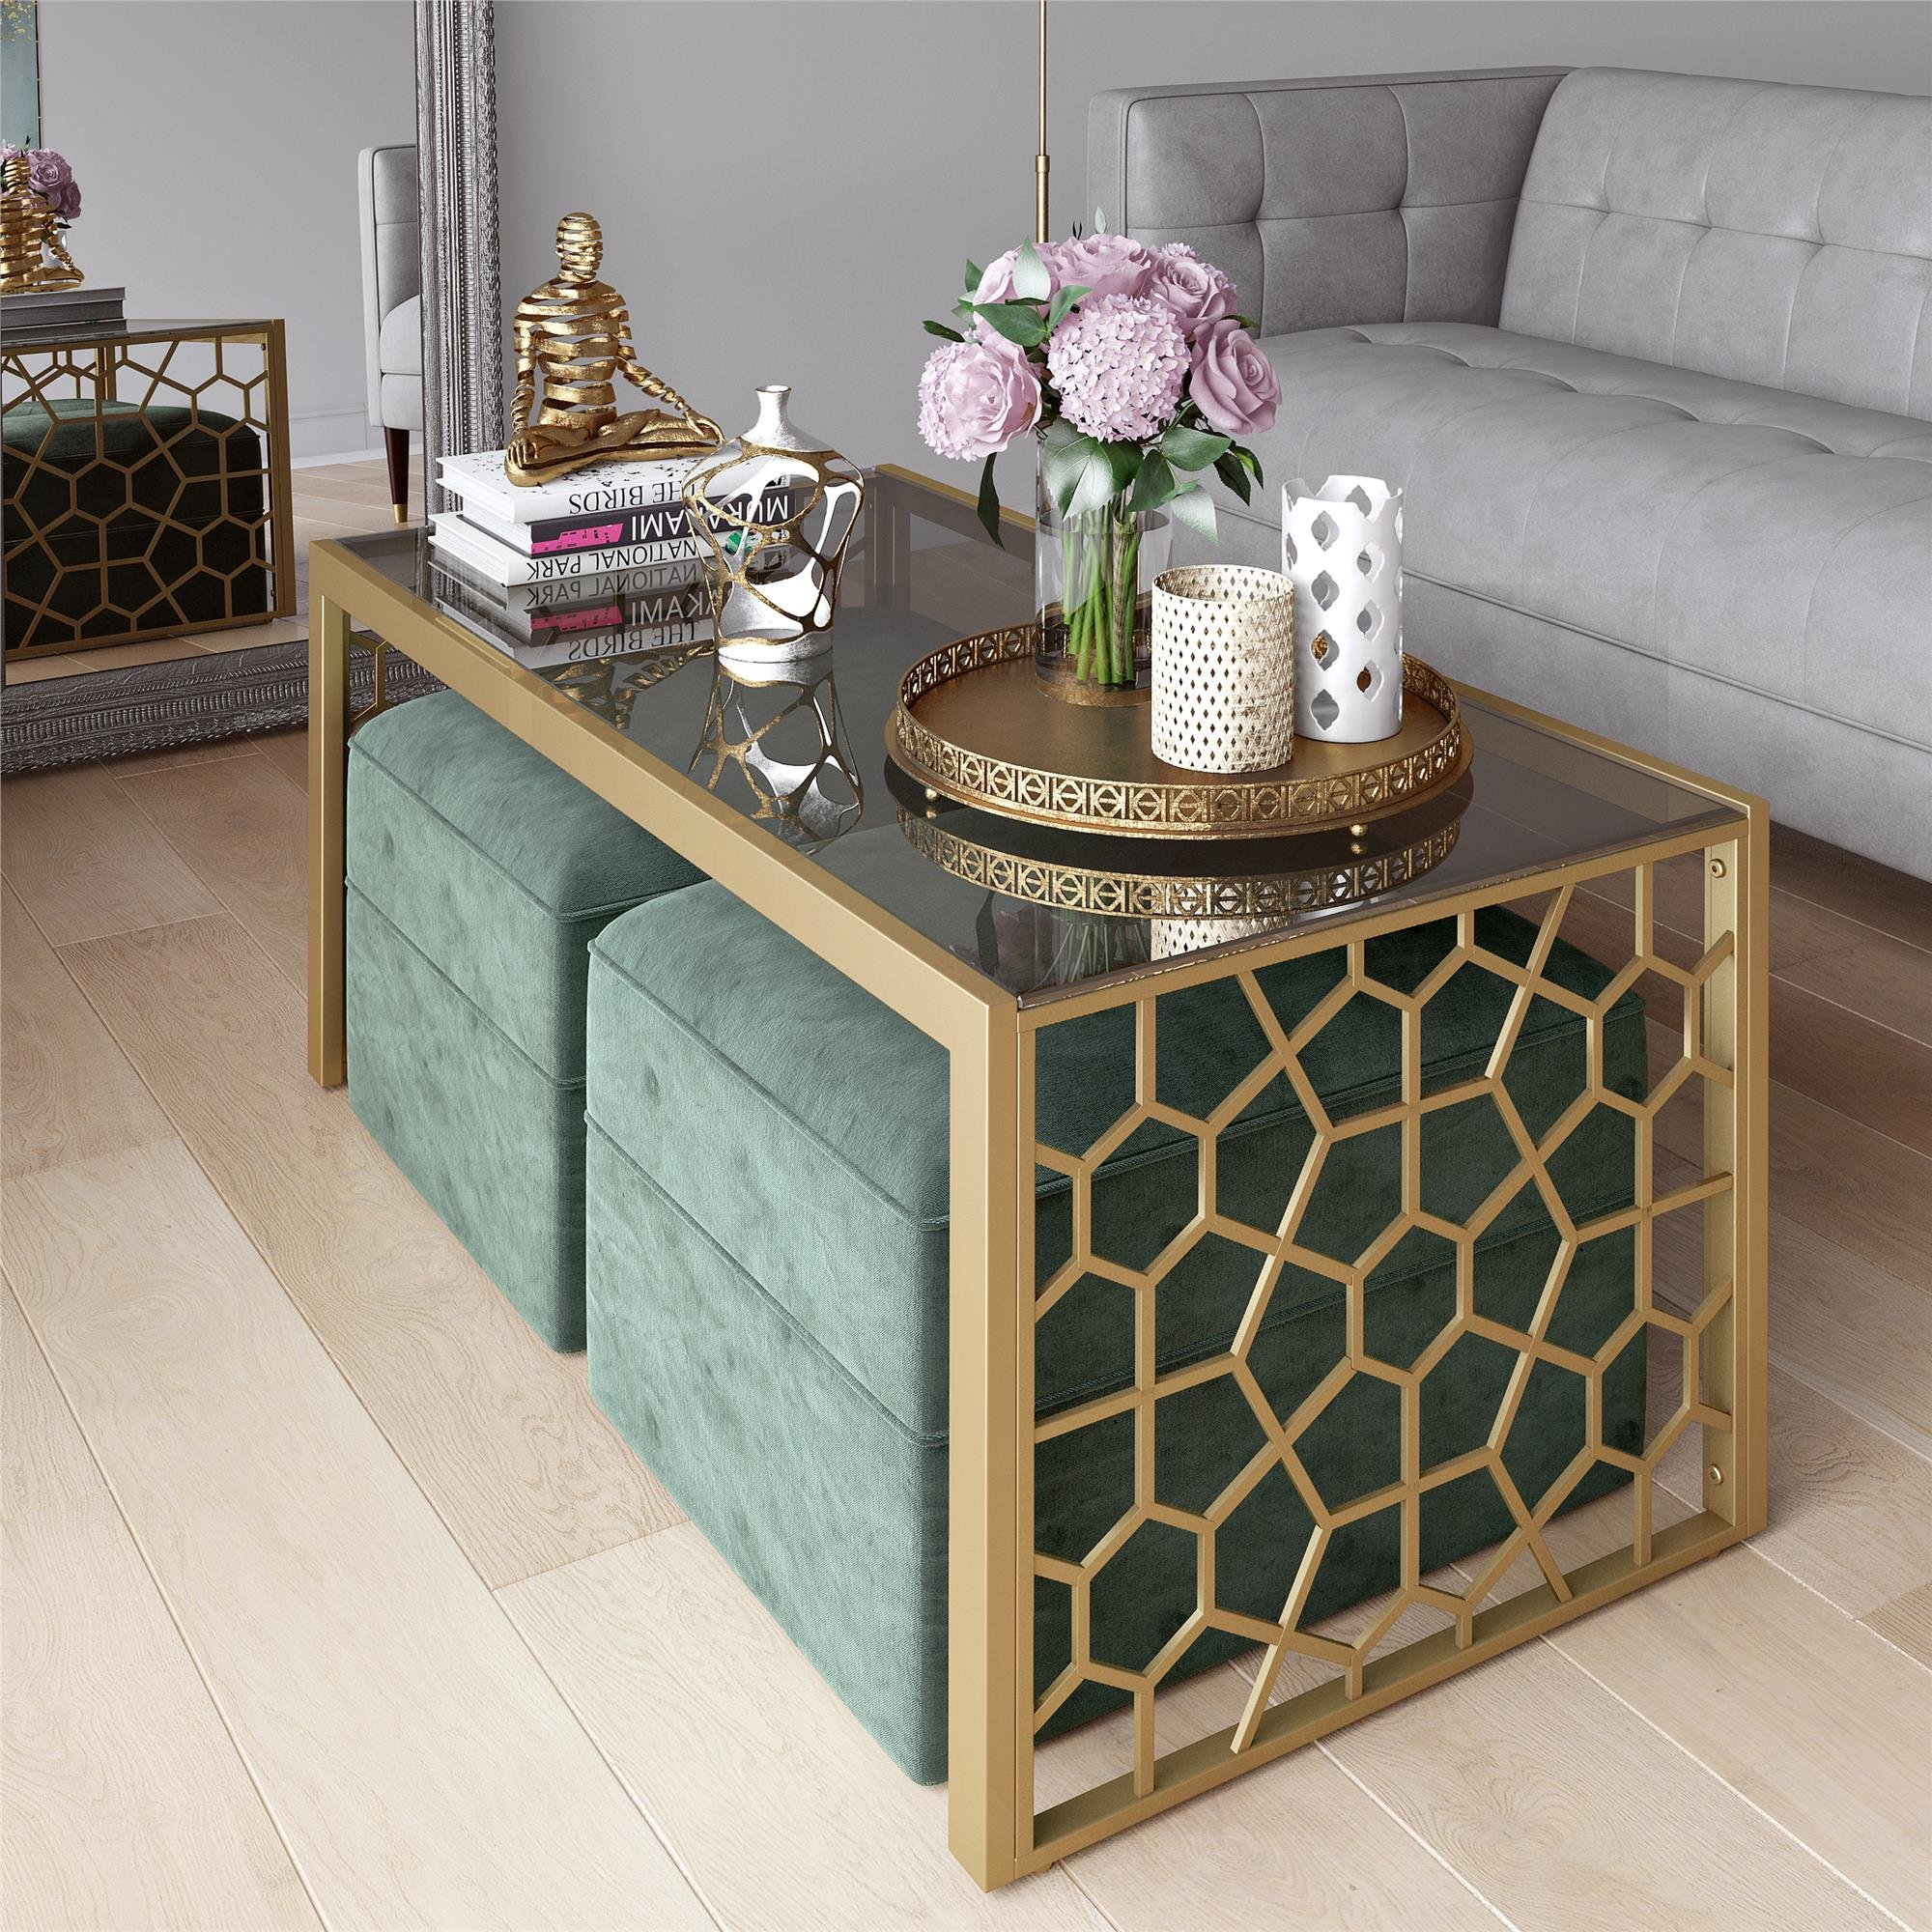 Cosmoliving Cosmopolitan Juliette Glass Top Coffee Table throughout size 2000 X 2000